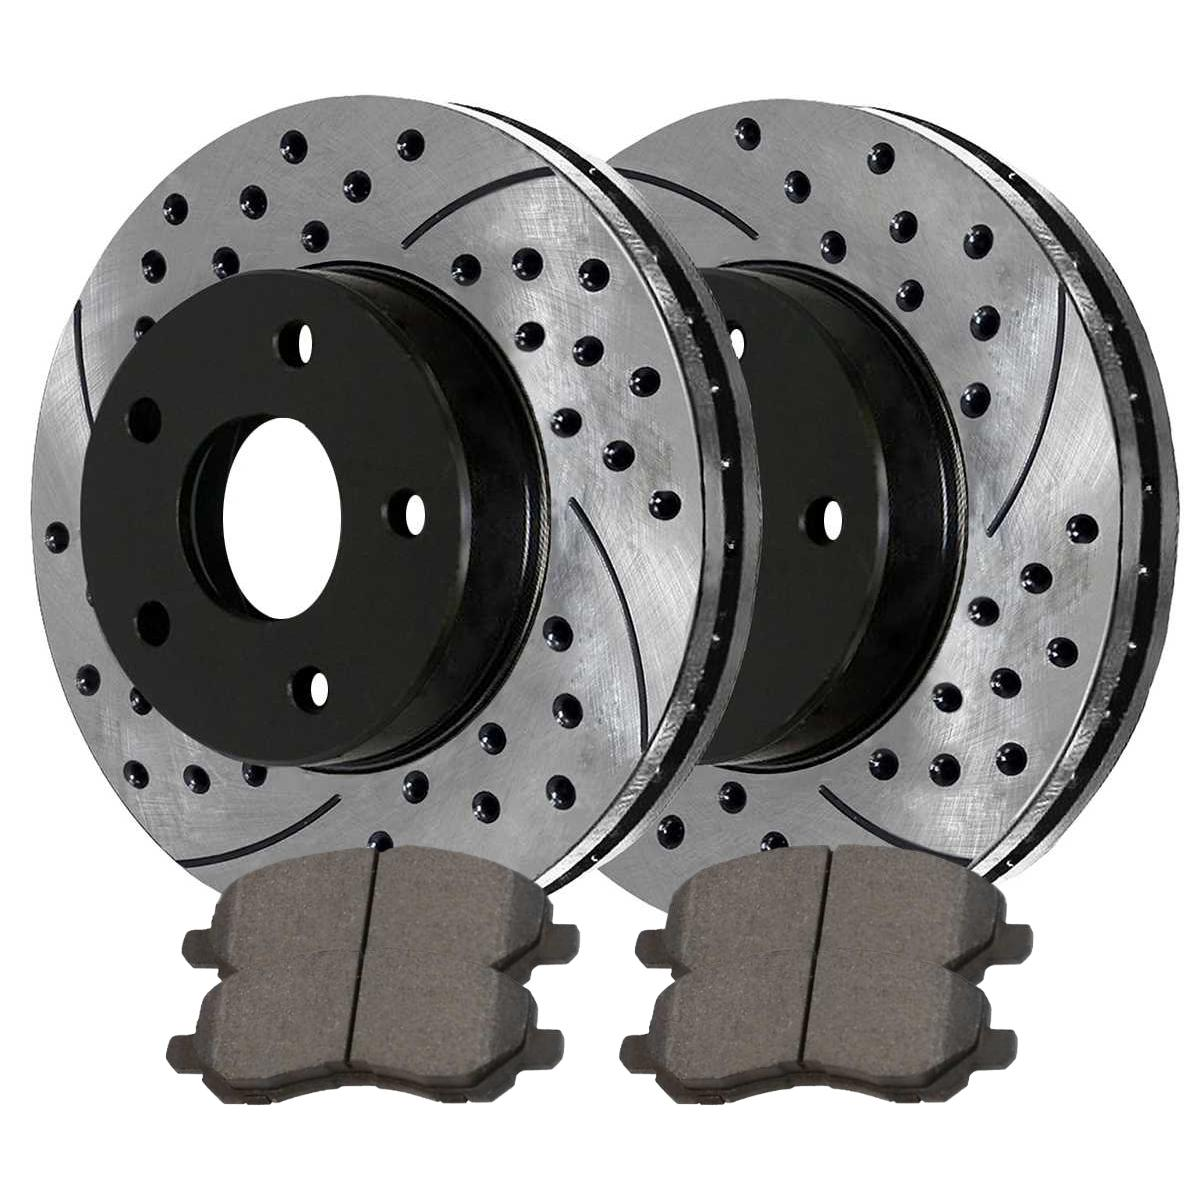 Prime Choice Auto Parts PERF641251047 Set of 2 Drilled and Slotted Brake Rotors and Performance Pads